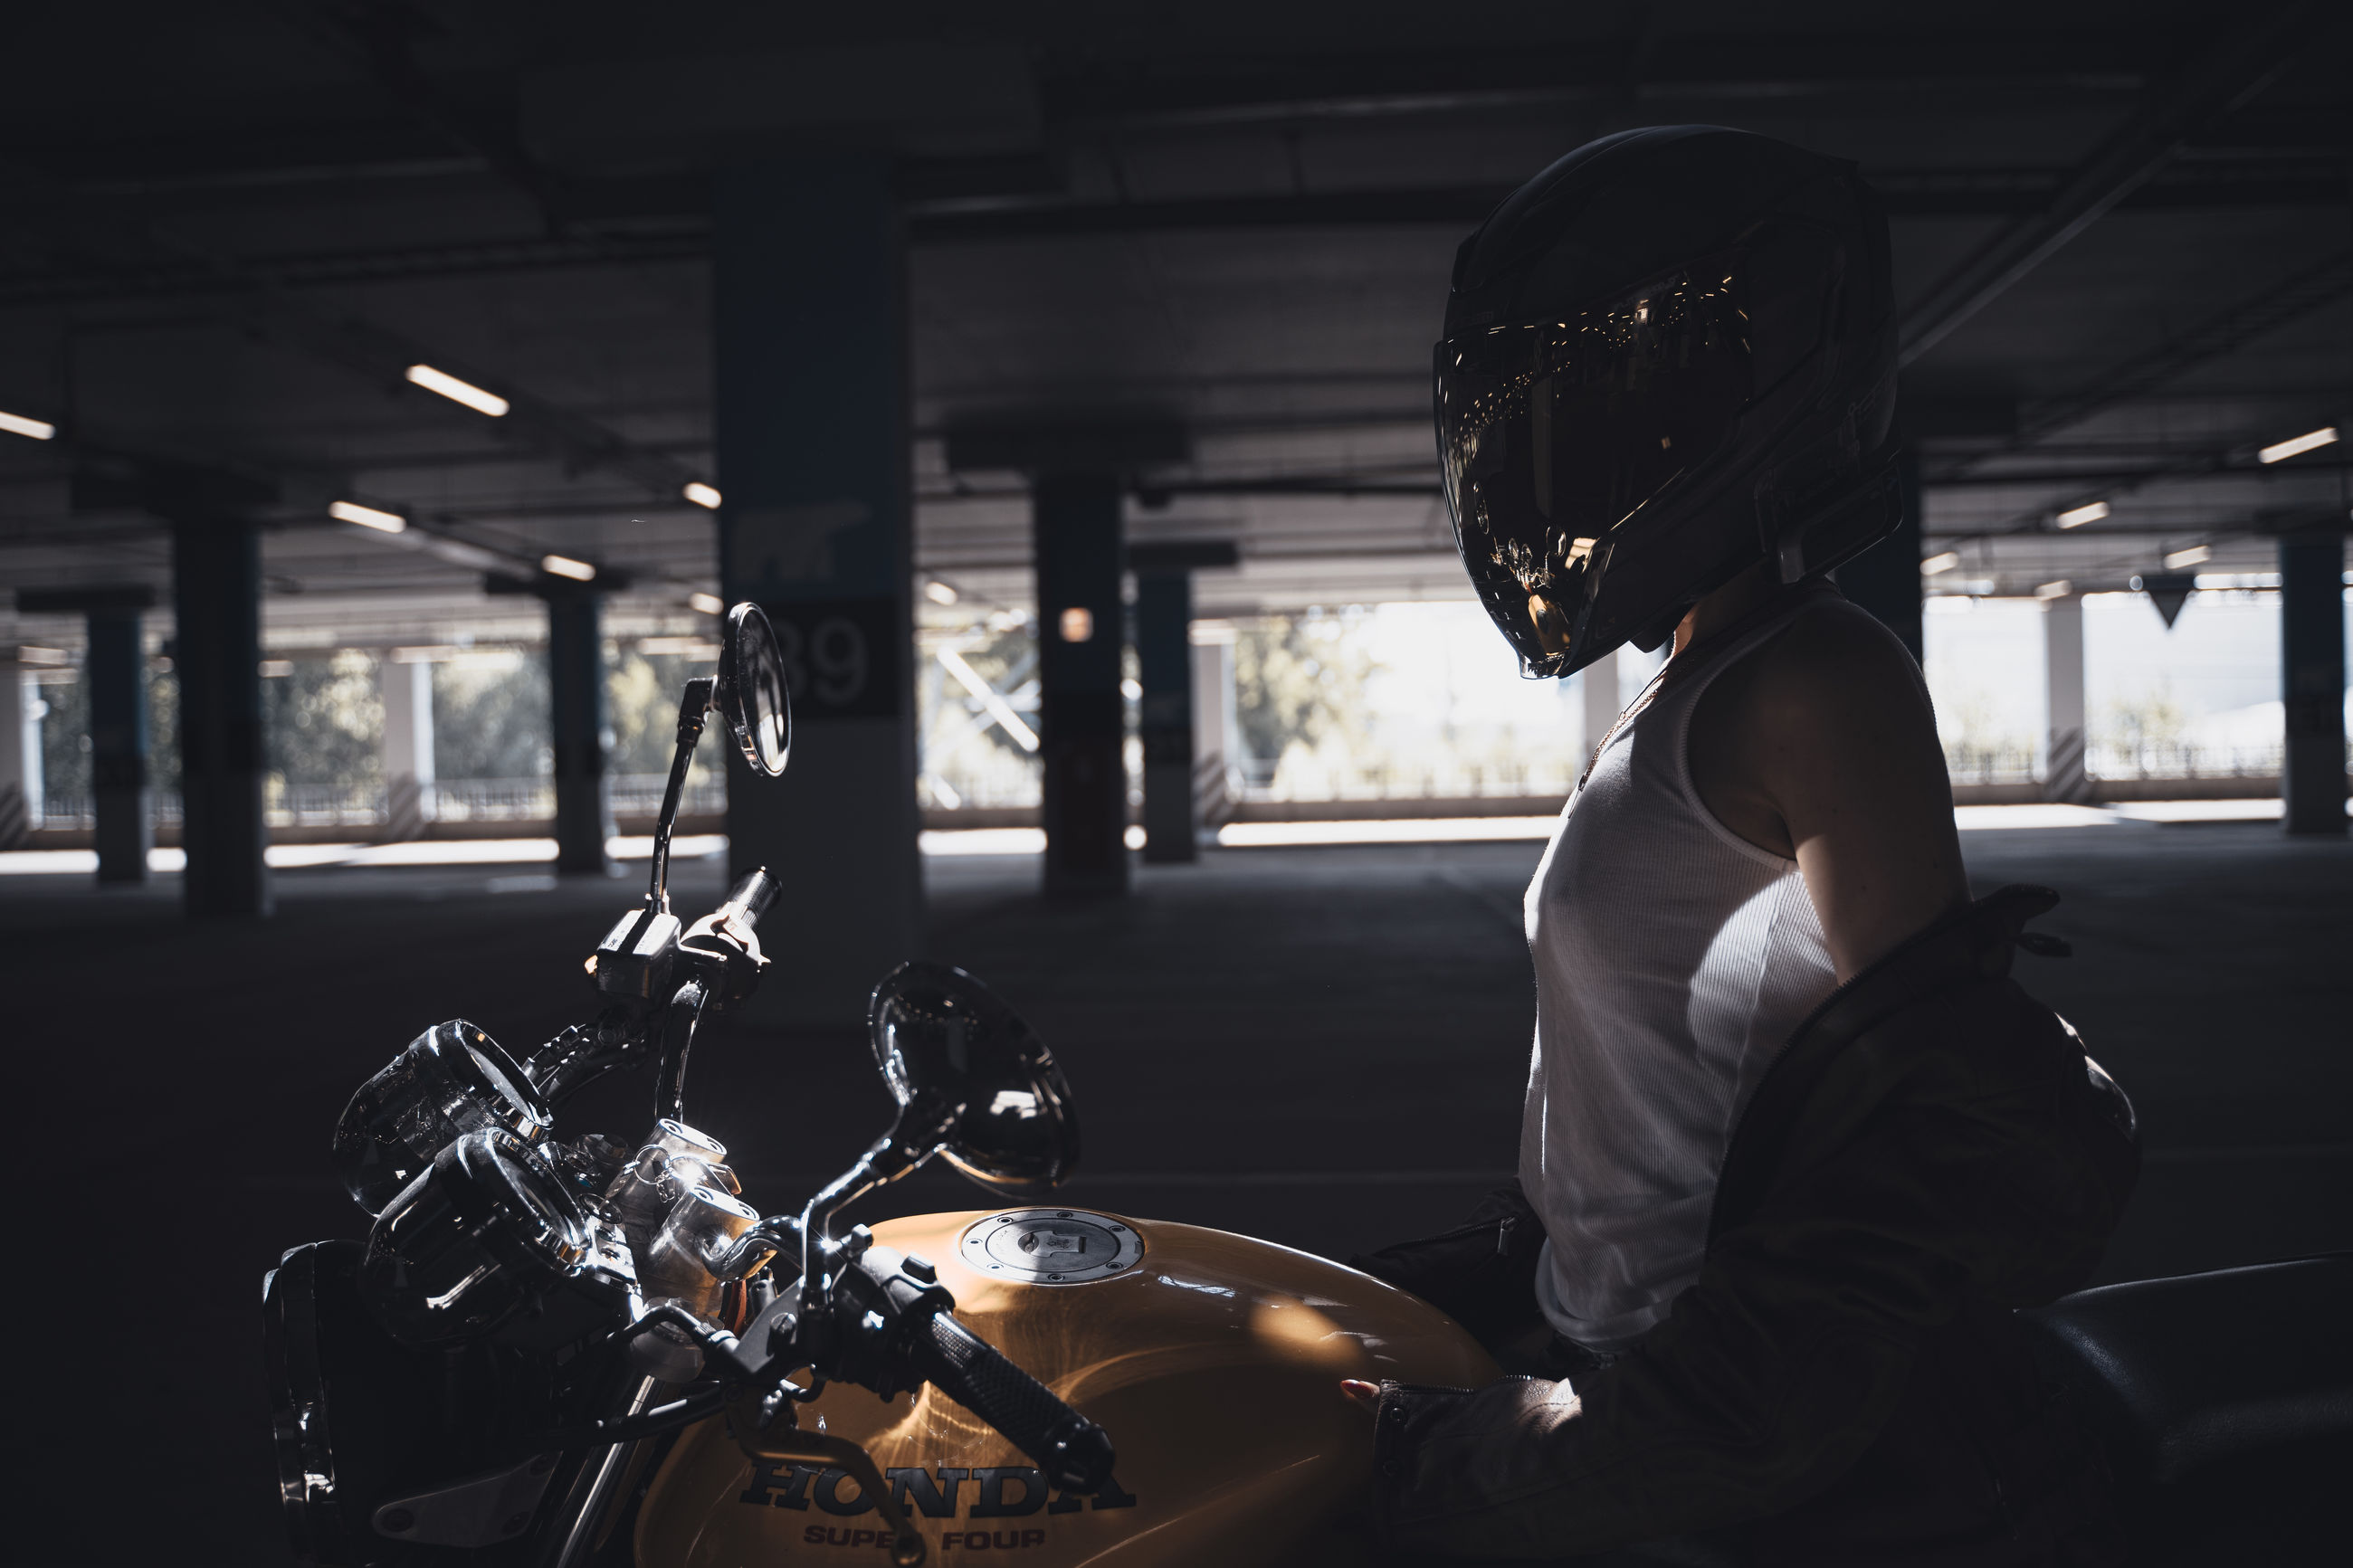 transportation, mode of transportation, one person, motorcycle, adult, vehicle, land vehicle, black, indoors, lifestyles, helmet, sports, women, headwear, side view, sports helmet, person, biker, crash helmet, clothing, architecture, night, car, auto part, young adult, darkness, leisure activity, men